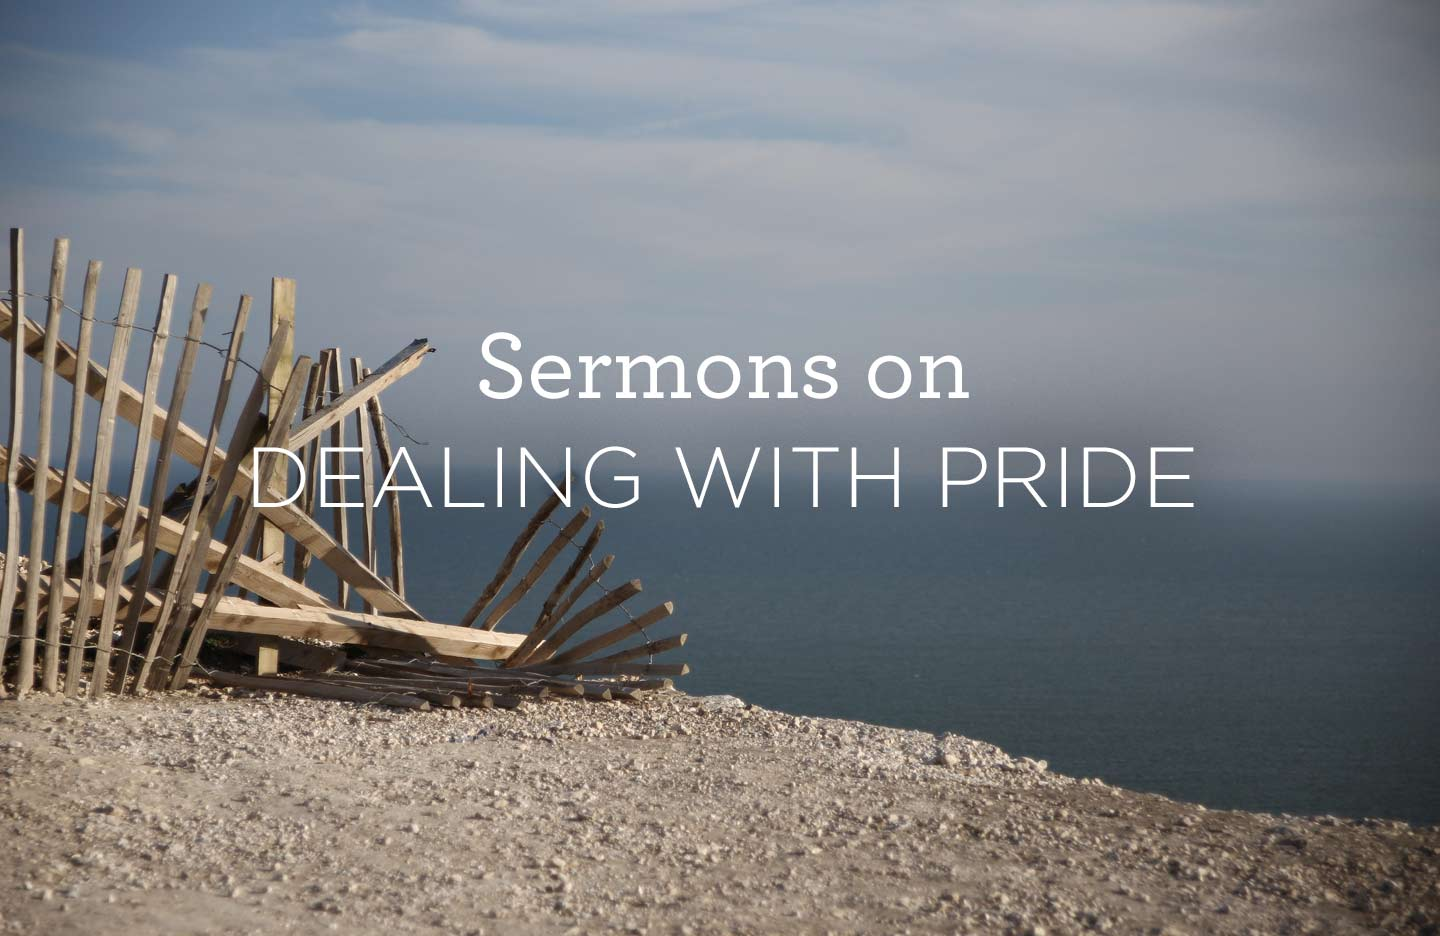 Sermons-on-Dealing-with-Pride